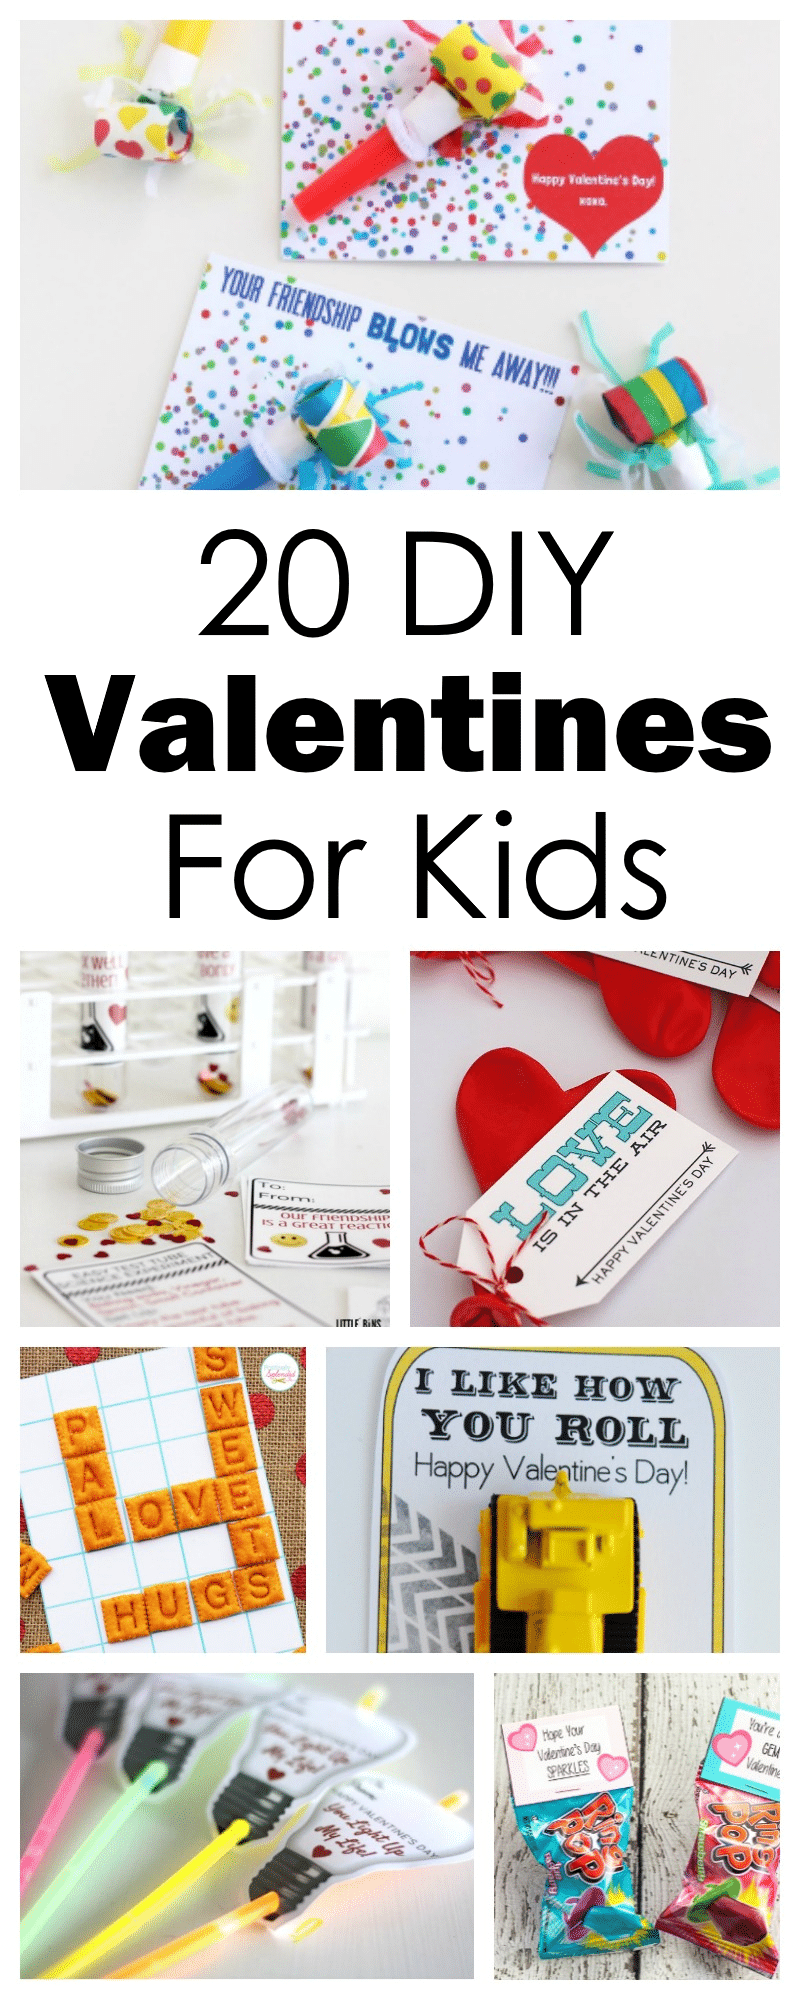 20+ DIY Valentines Kids will LOVE making and receiving! #valentinesday #DIYvalentine #kids